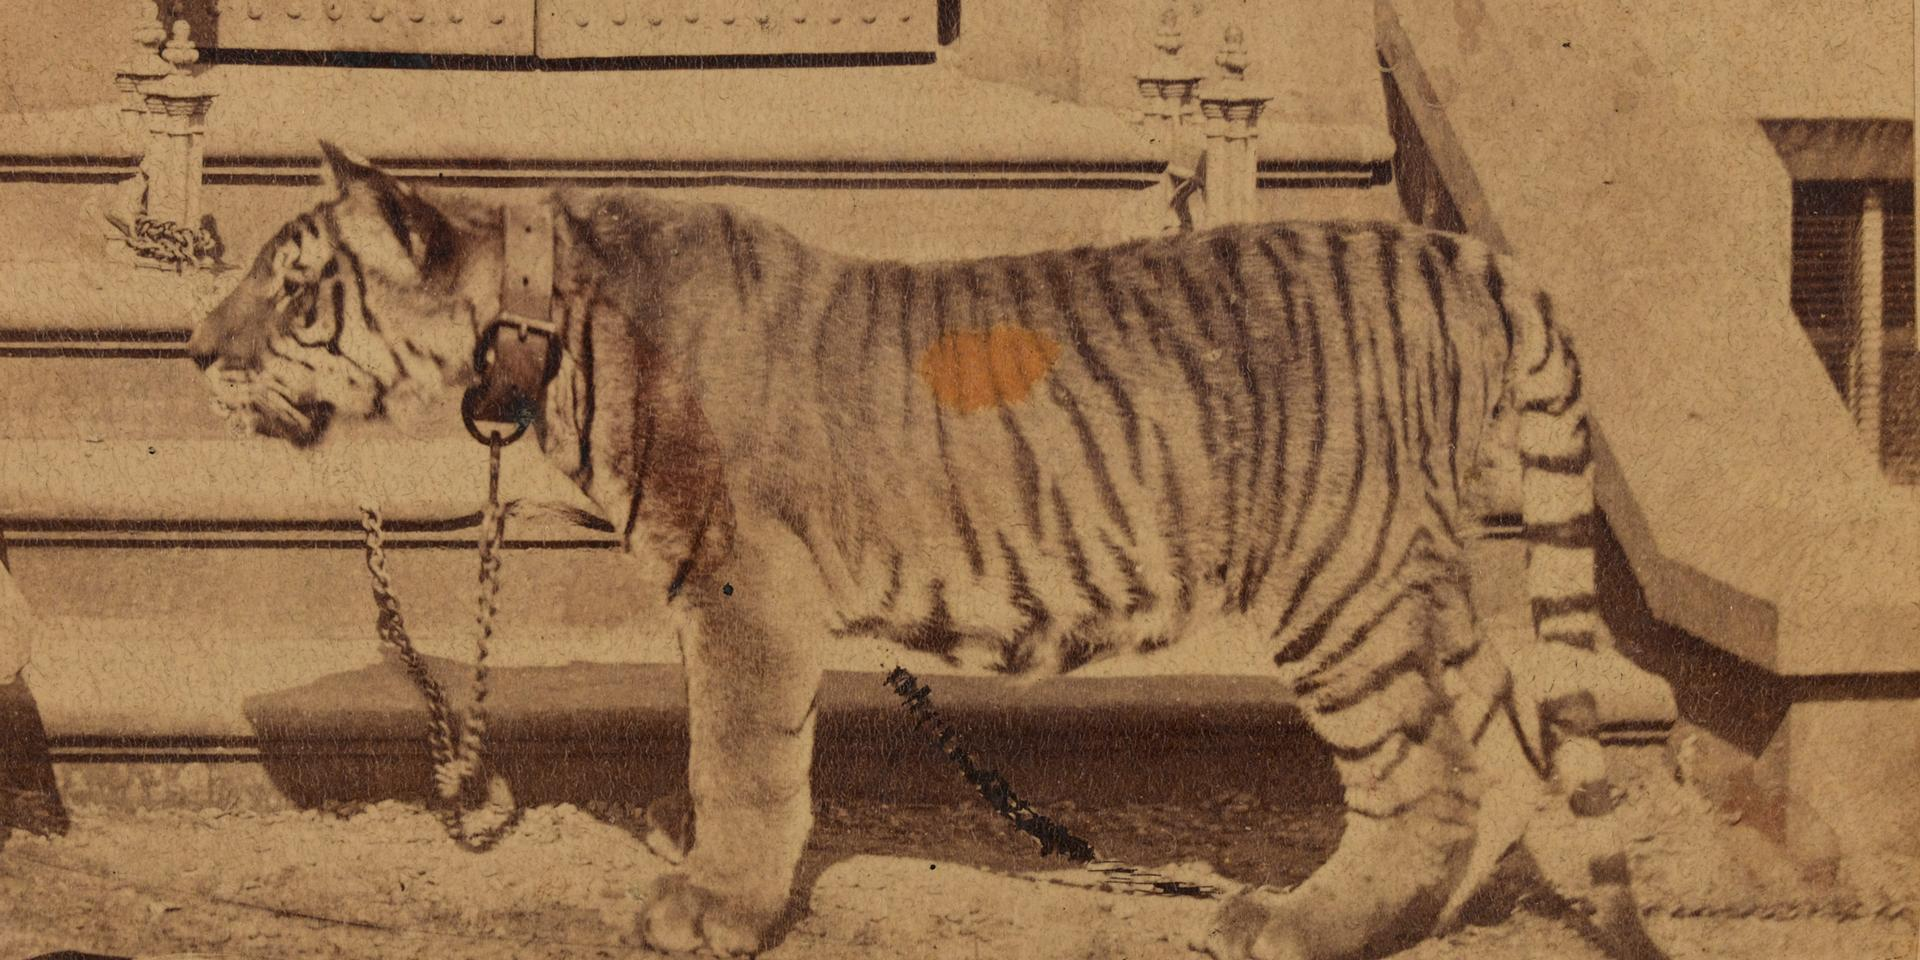 Plassey the tiger of the Royal Madras Fusiliers in 1870